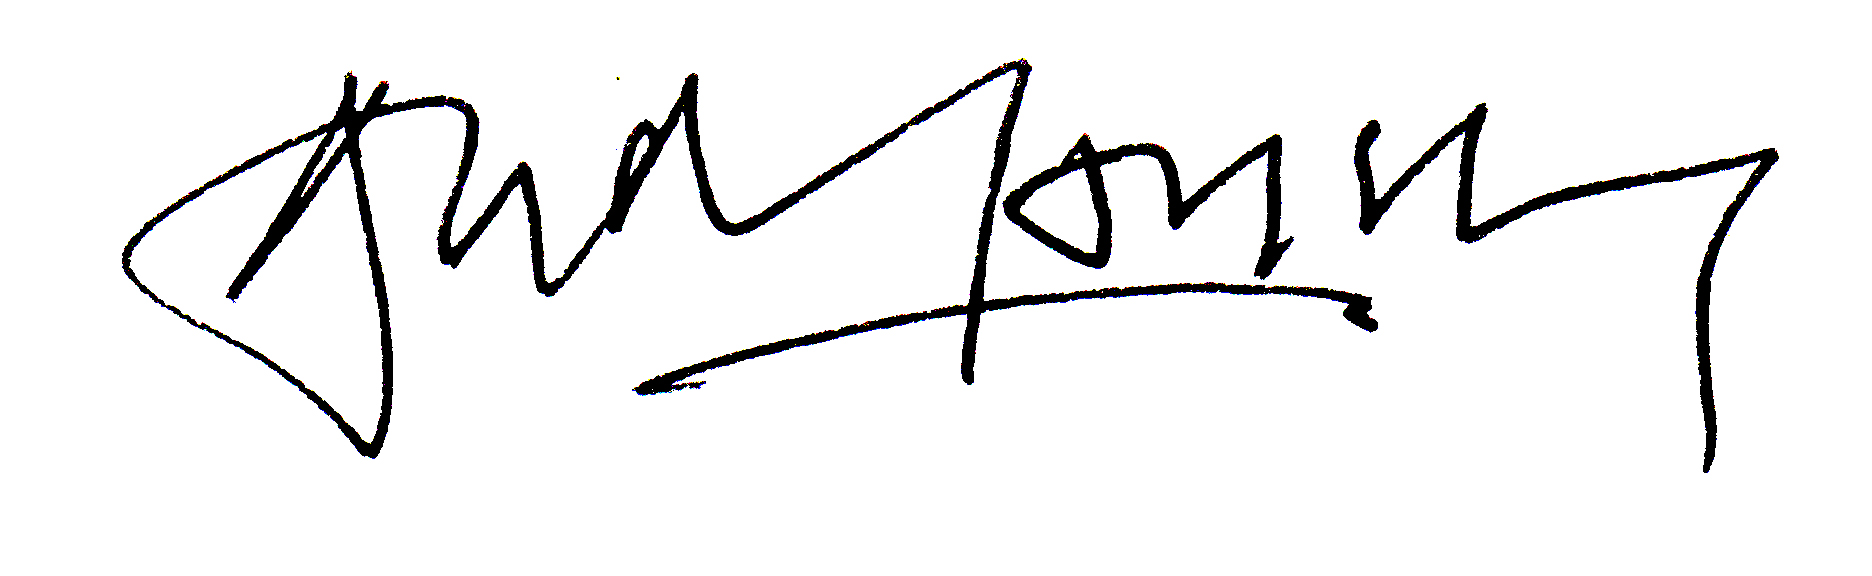 Andrew Lansley's Signature